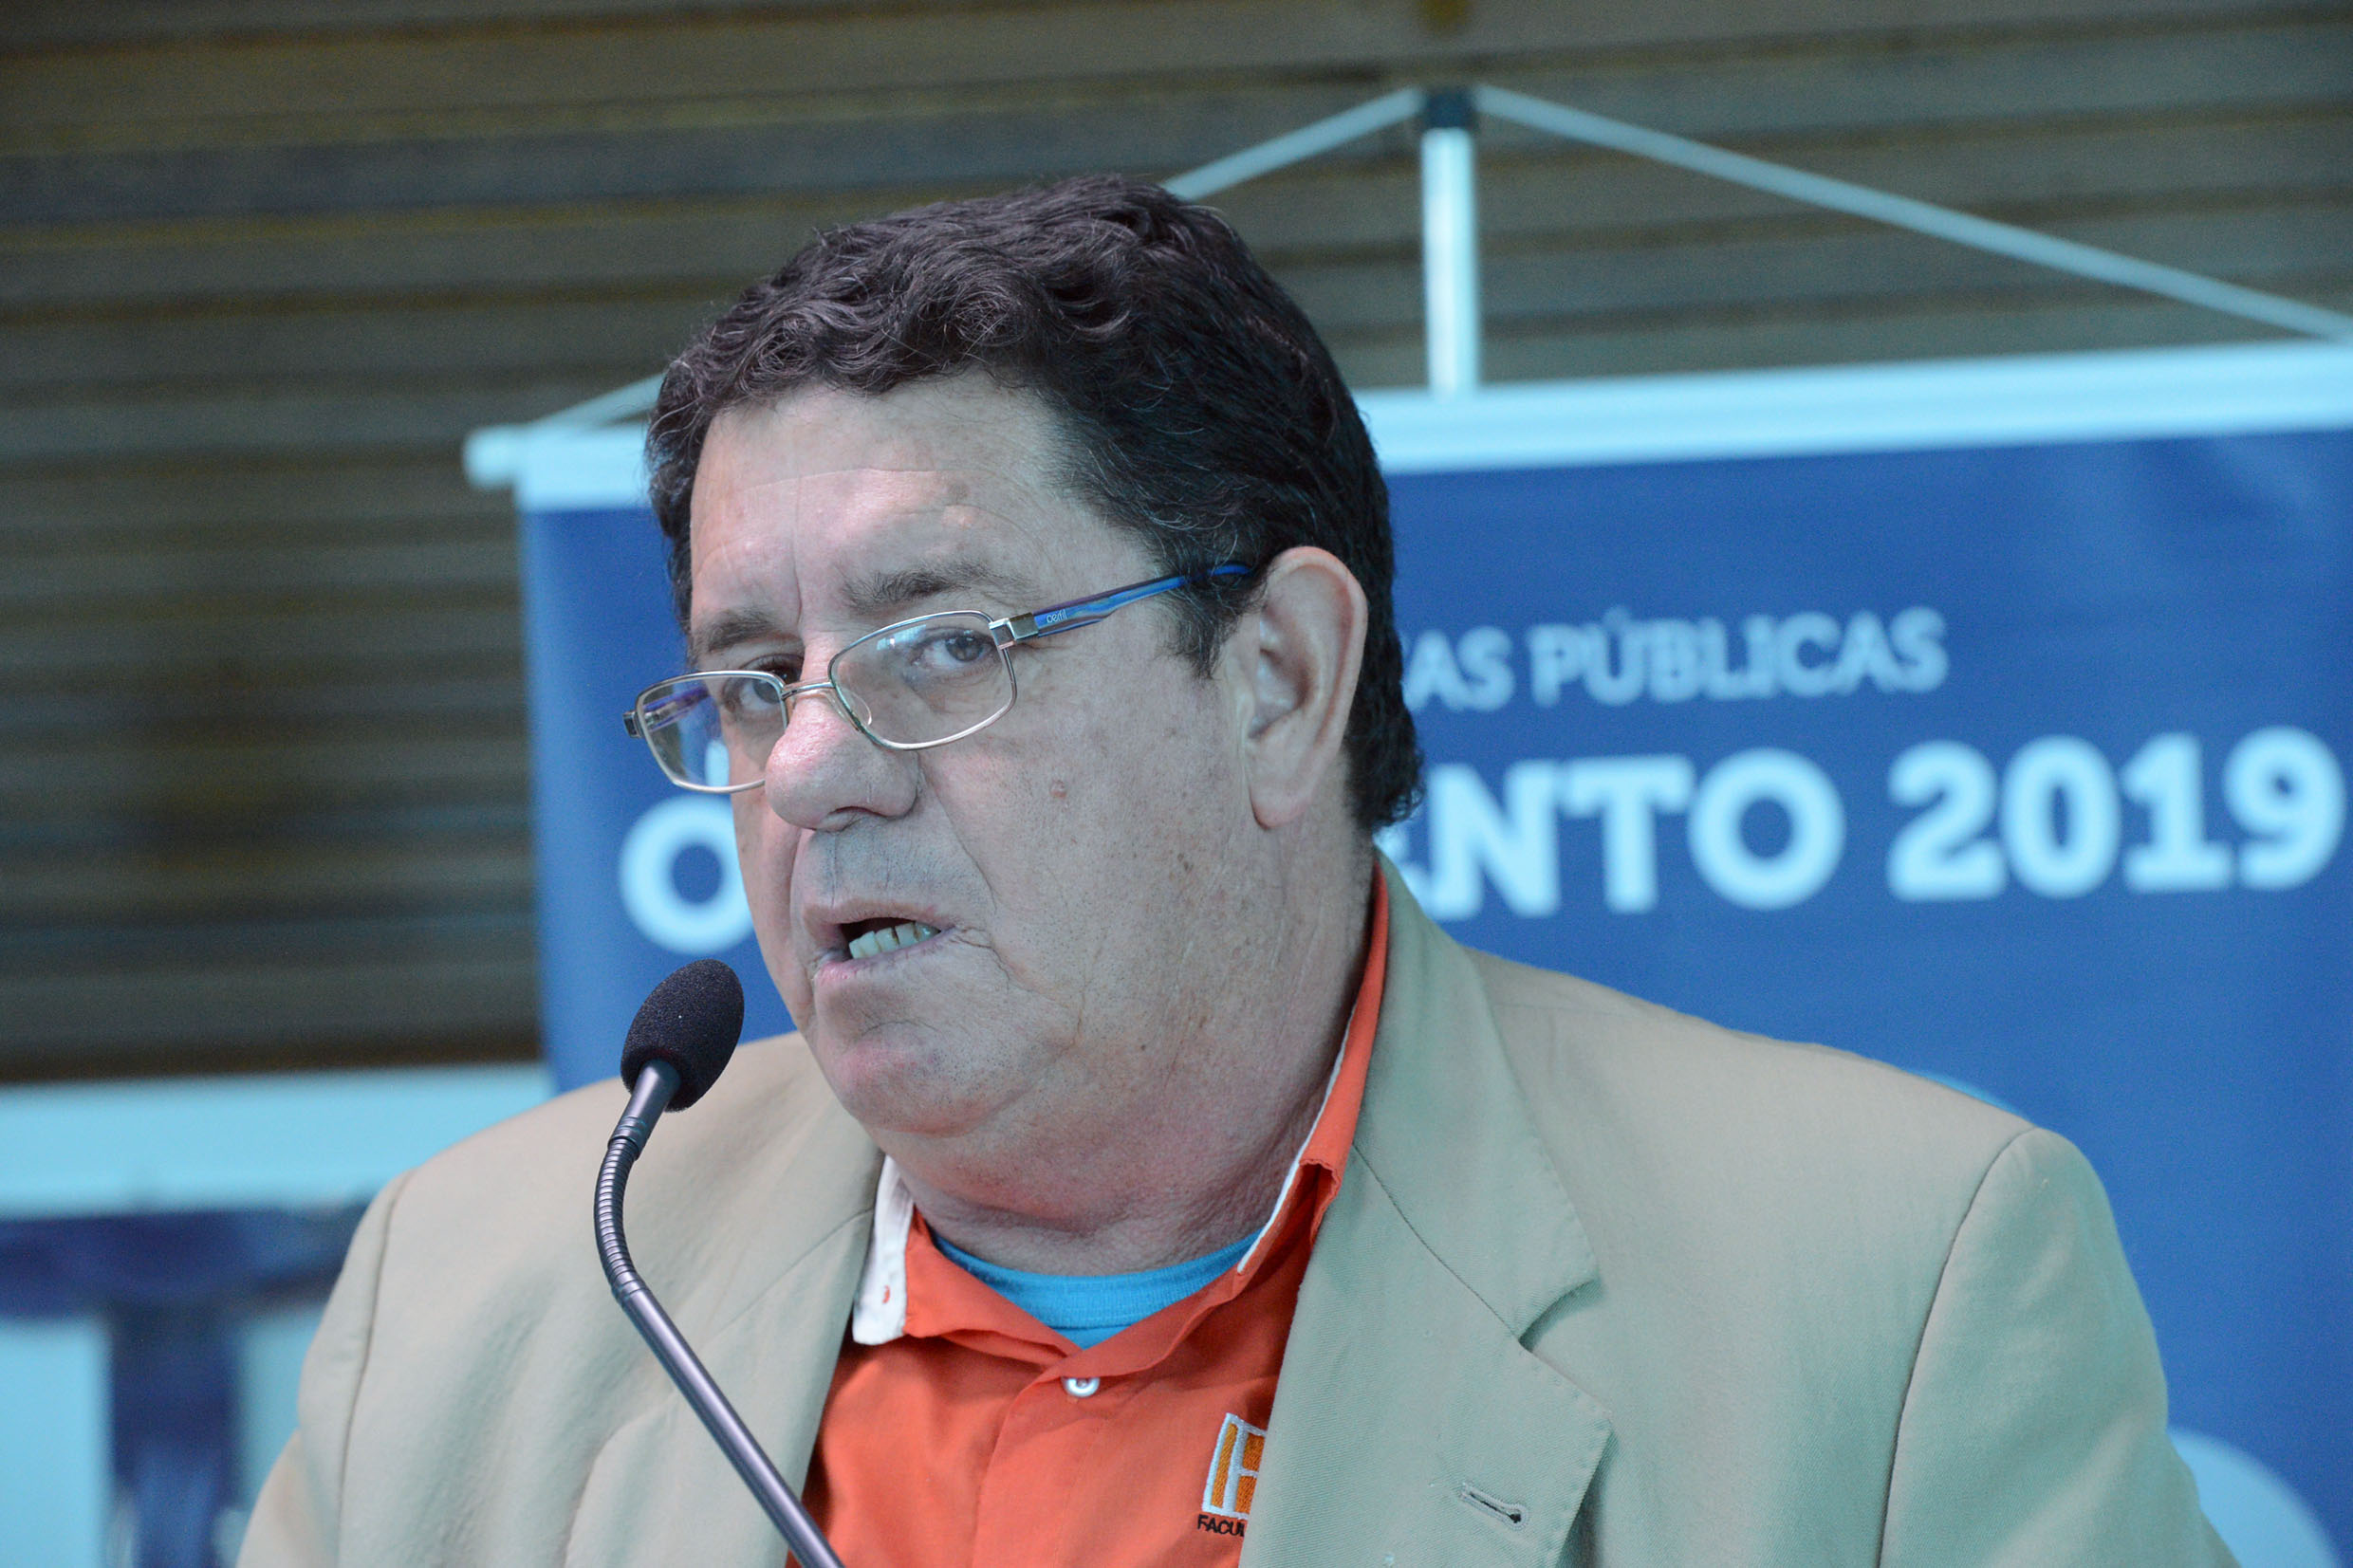 José Angelo Garcia<a style='float:right' href='https://www3.al.sp.gov.br/repositorio/noticia/N-06-2018/fg224945.jpg' target=_blank><img src='/_img/material-file-download-white.png' width='14px' alt='Clique para baixar a imagem'></a>